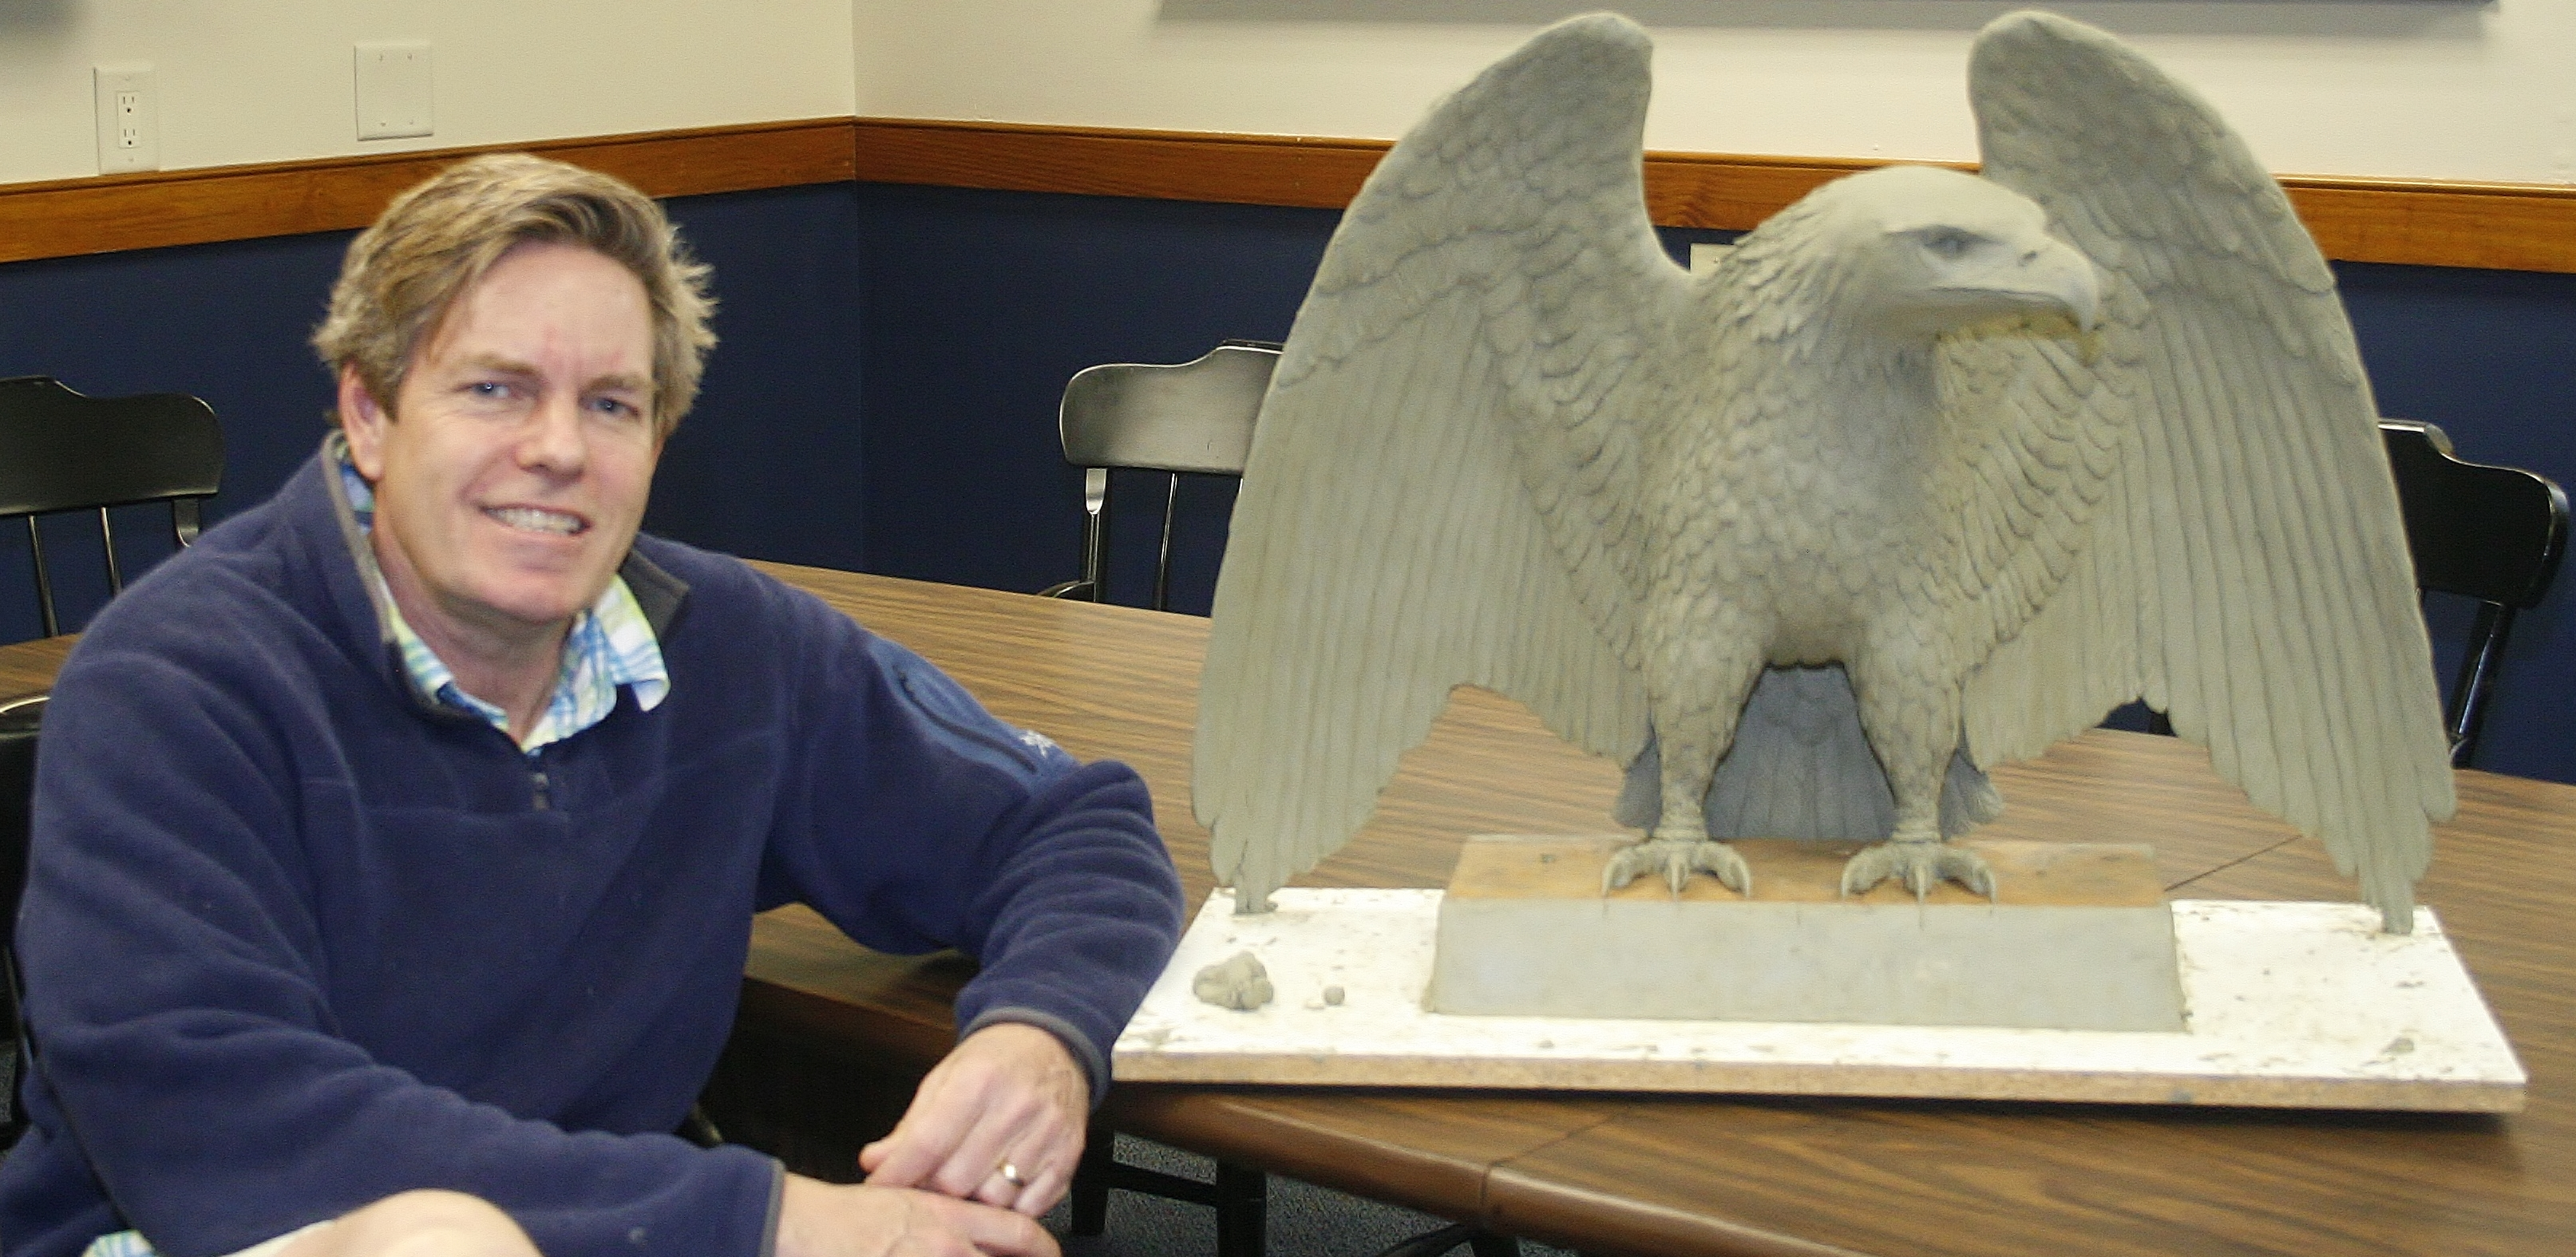 Bond Hall eagle model and sculptor Scott Penegar